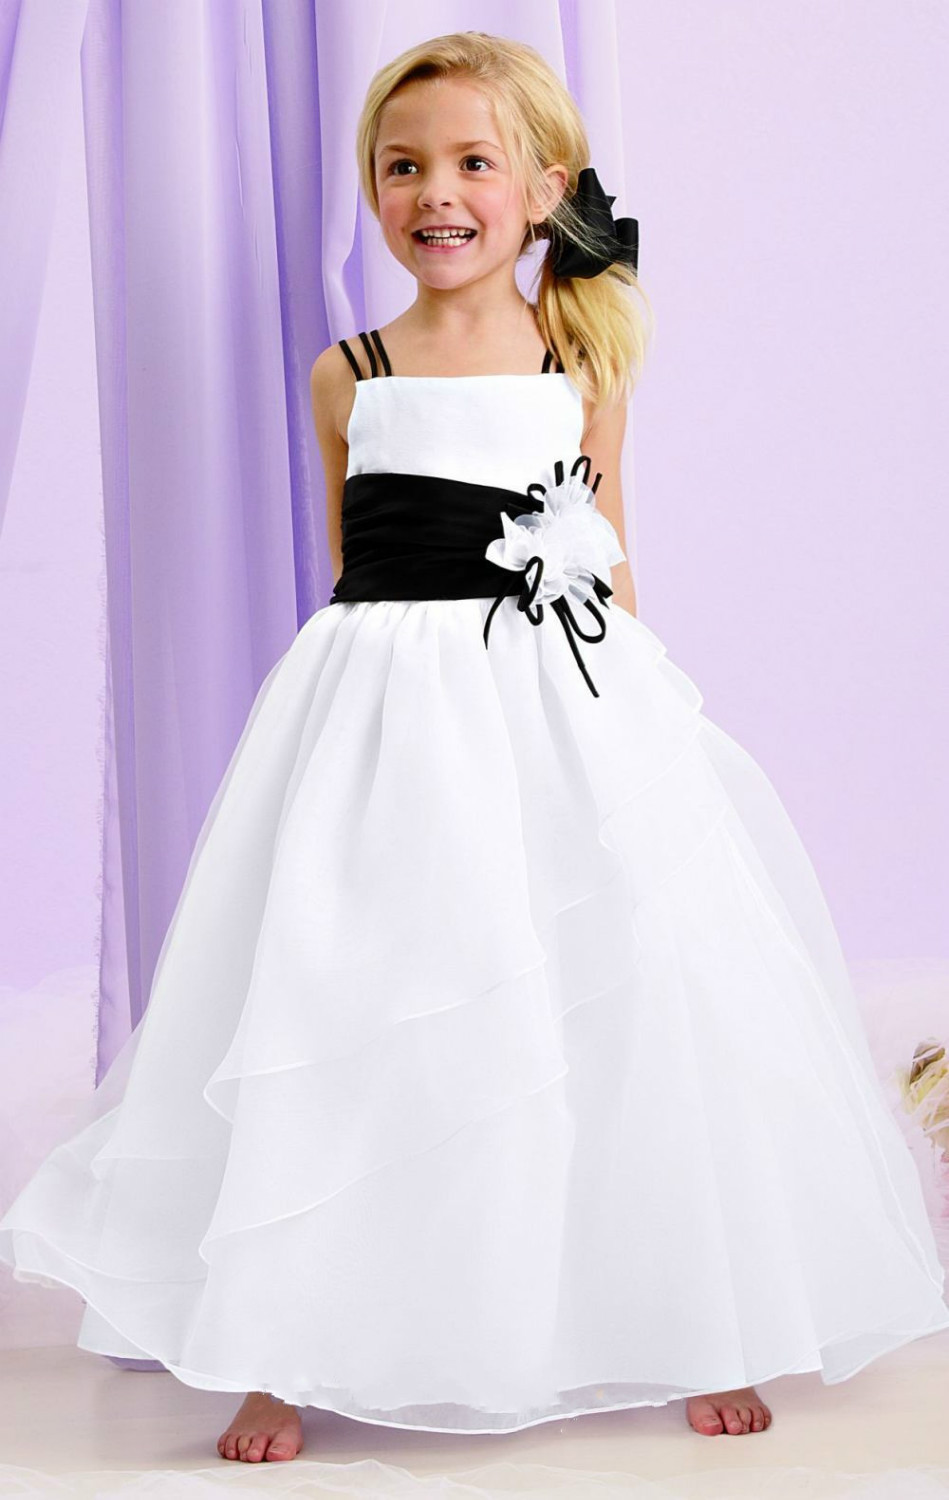 Compare Prices on Flower Girl Dress Designers- Online Shopping/Buy ...